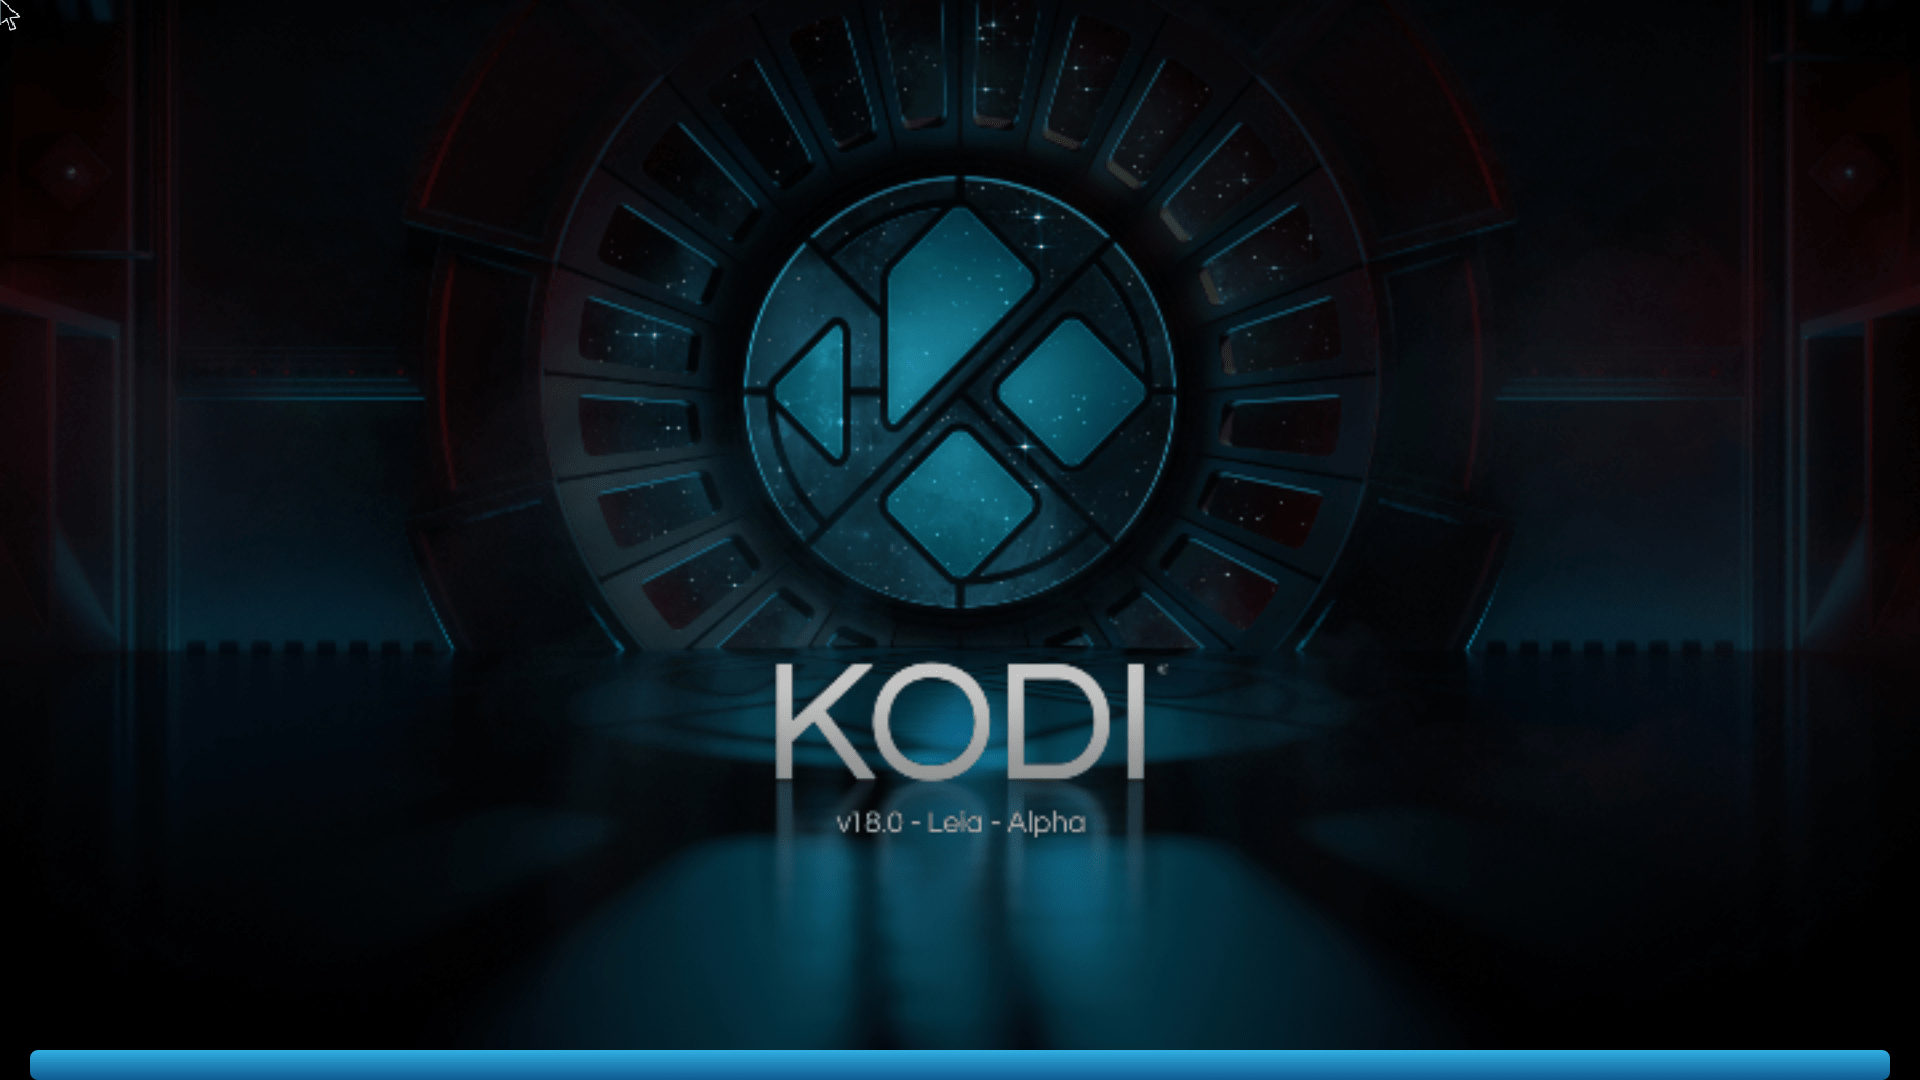 Step 7 Congratulations Kodi 18.0 Leia is now running on Android TV